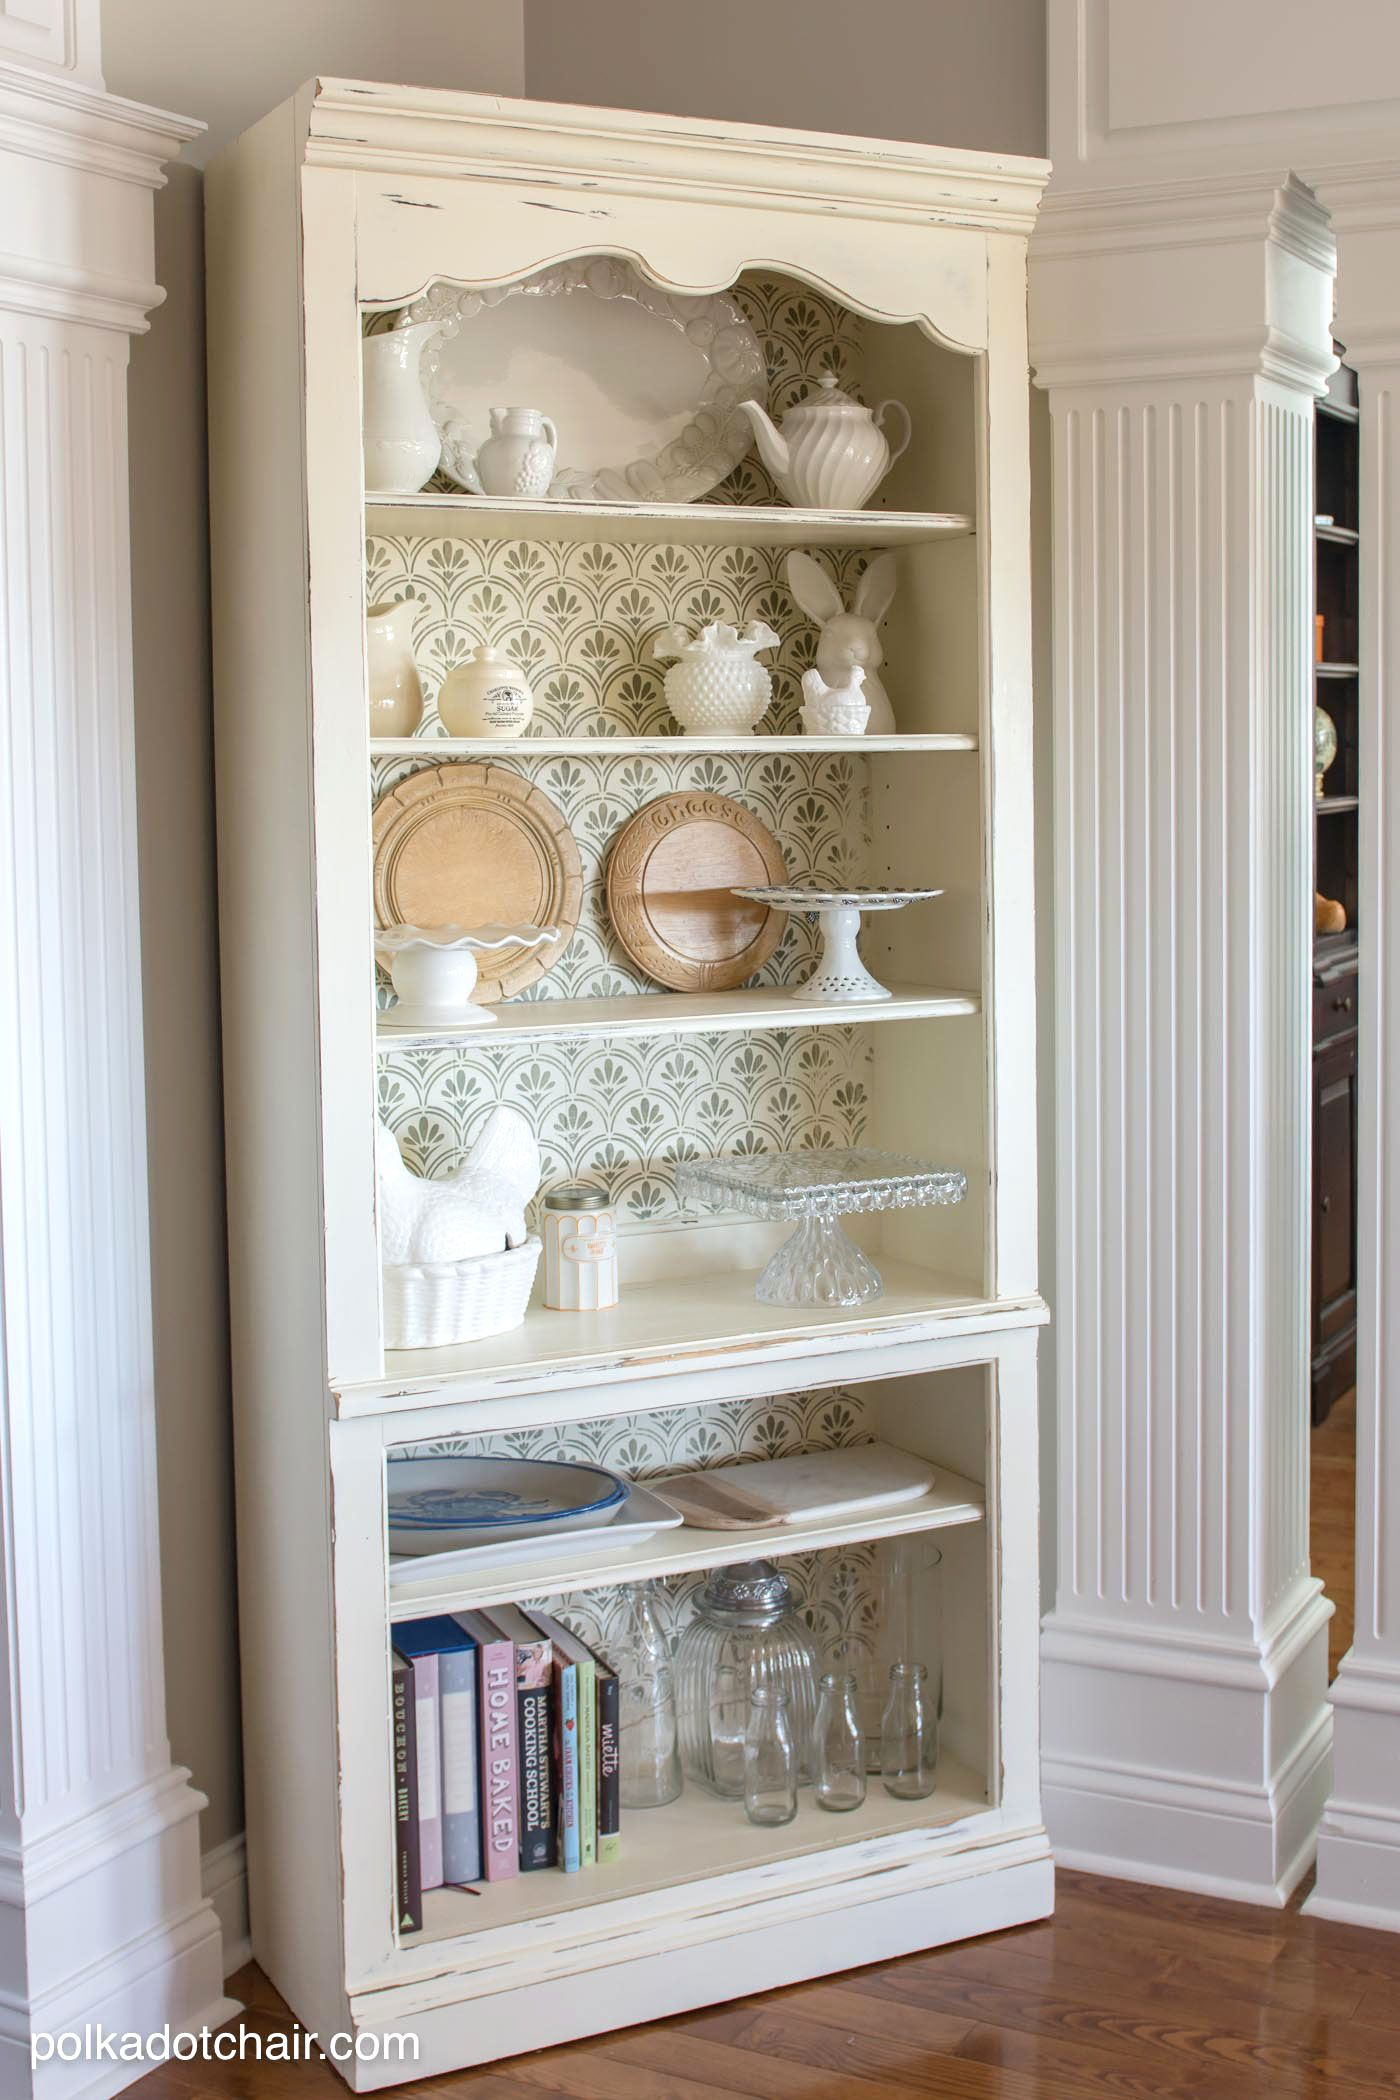 Diy Painted Stencil Bathroom Floor: DIY Stenciled Bookcase Project, She Painted The Bookcase